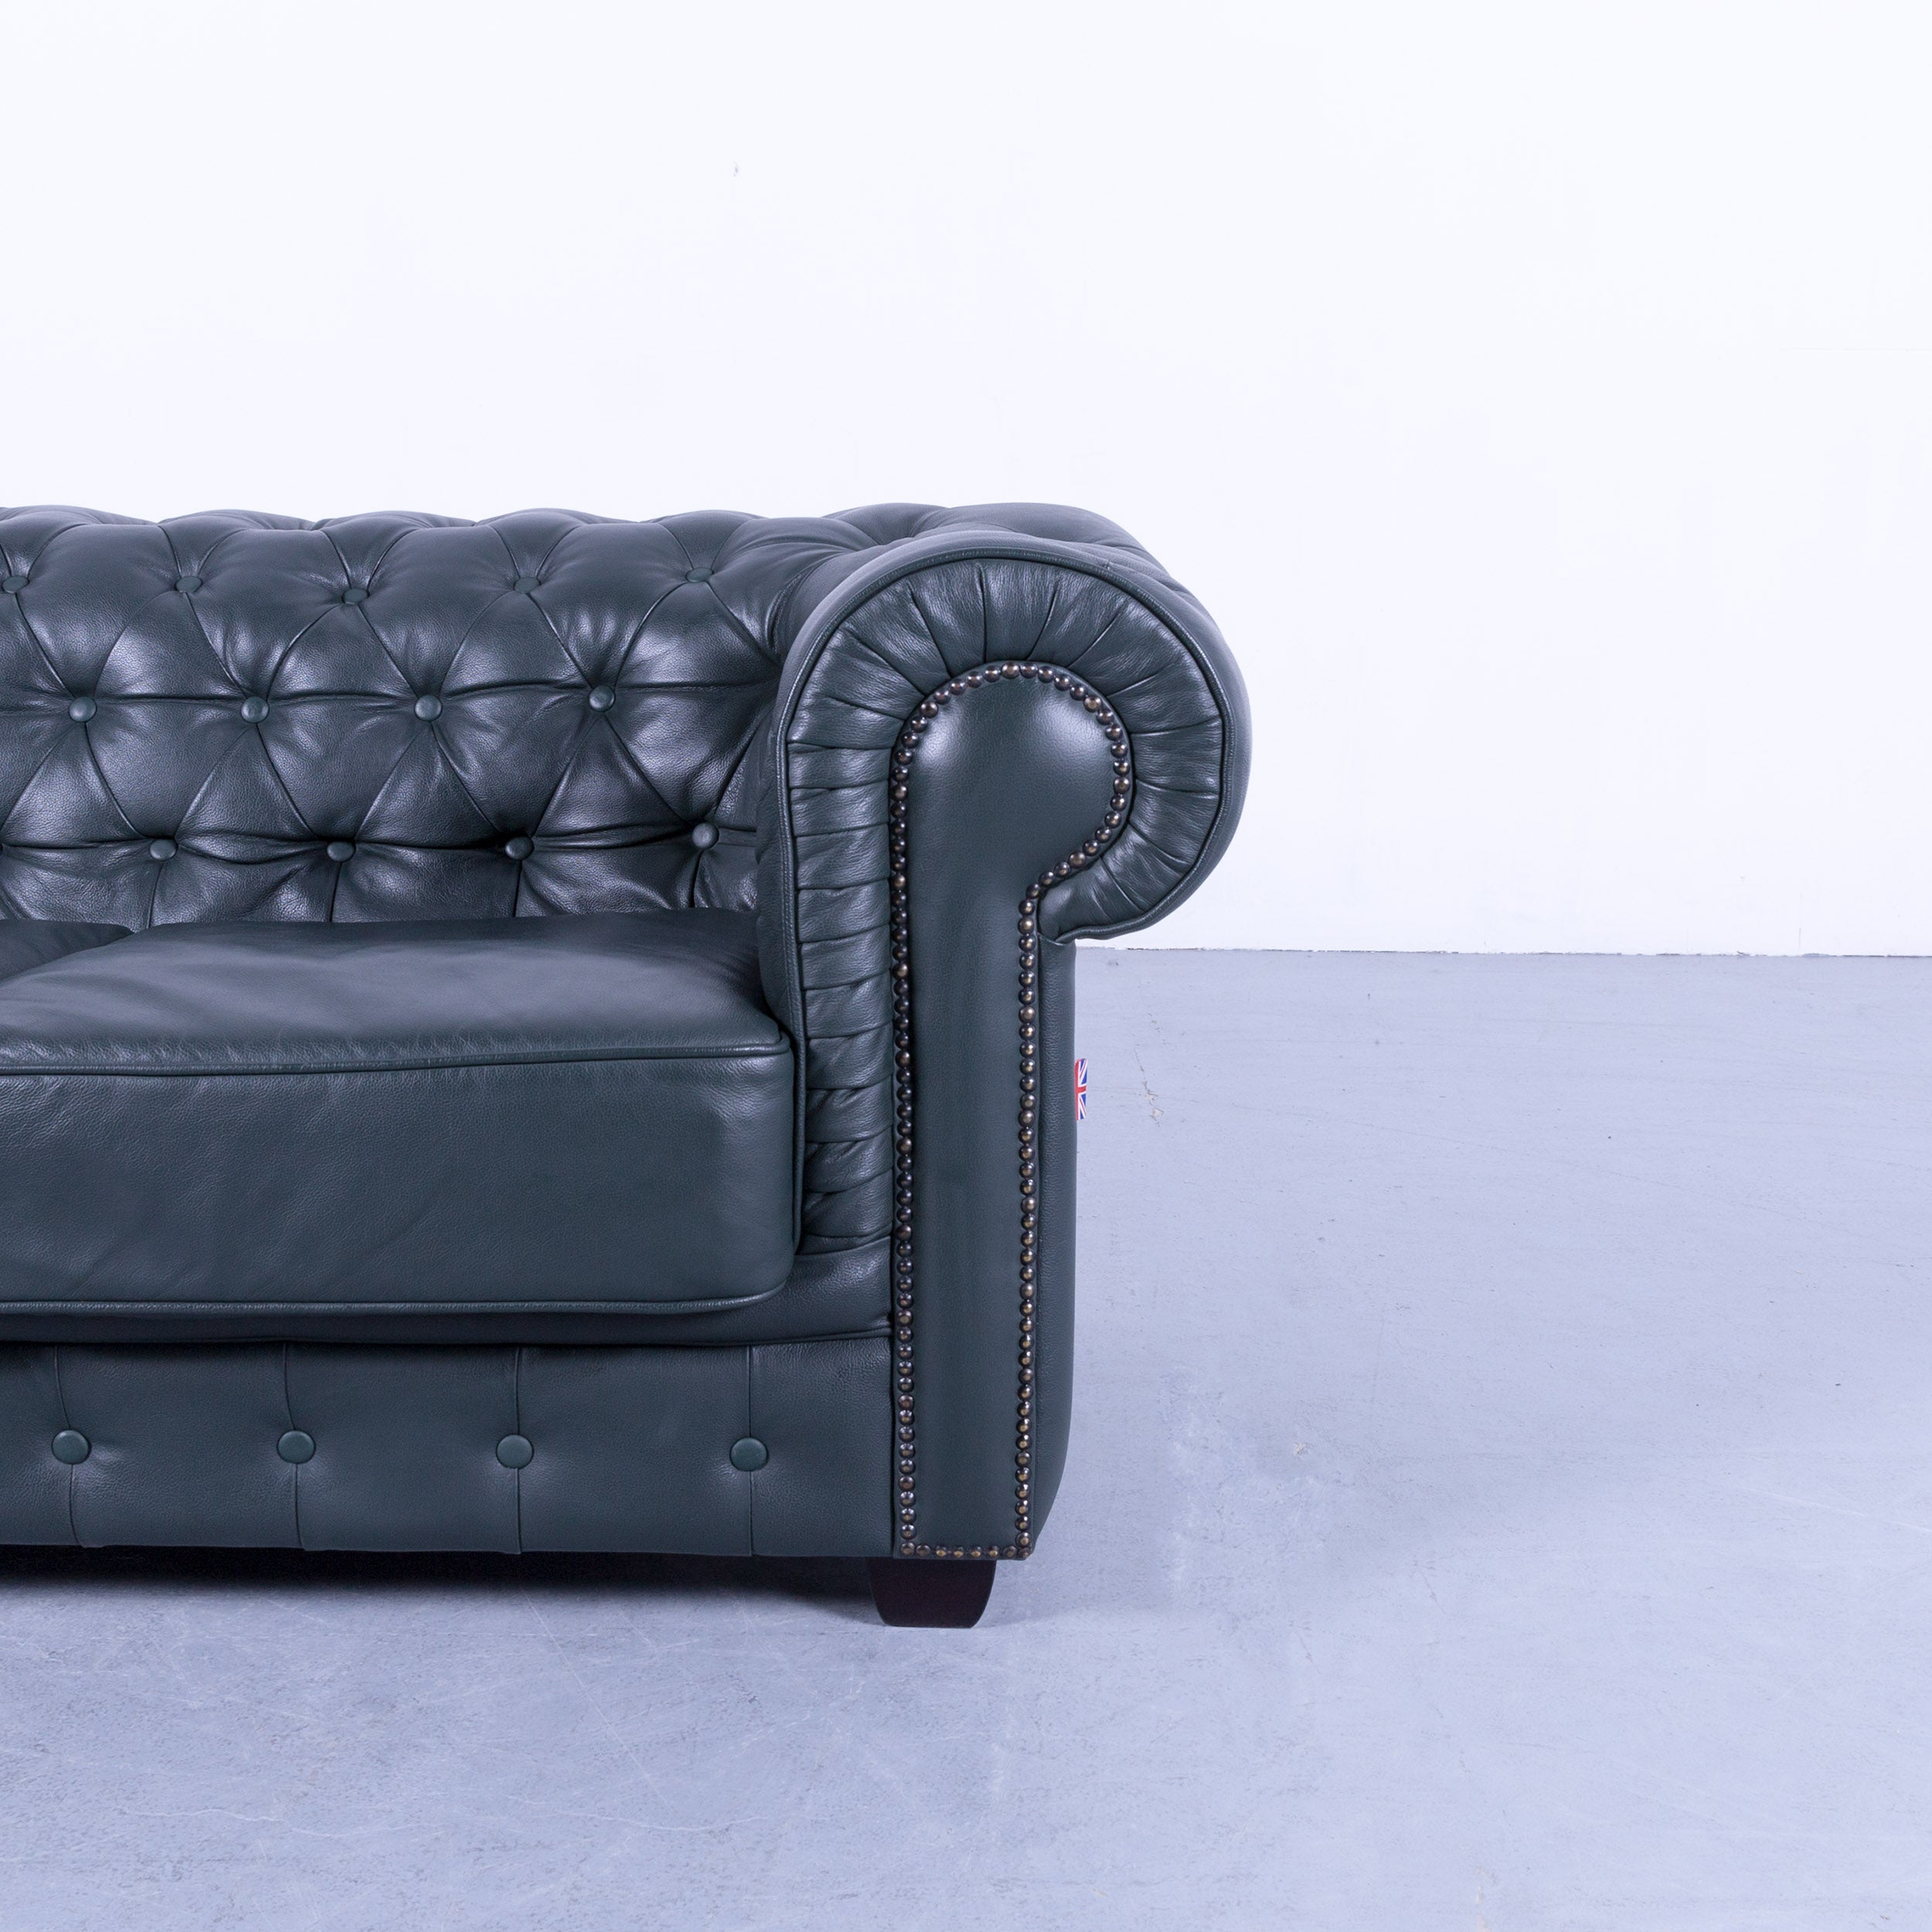 Chesterfield Sofa Dark Green Two Seat Vintage Retro Couch Rivets Uk